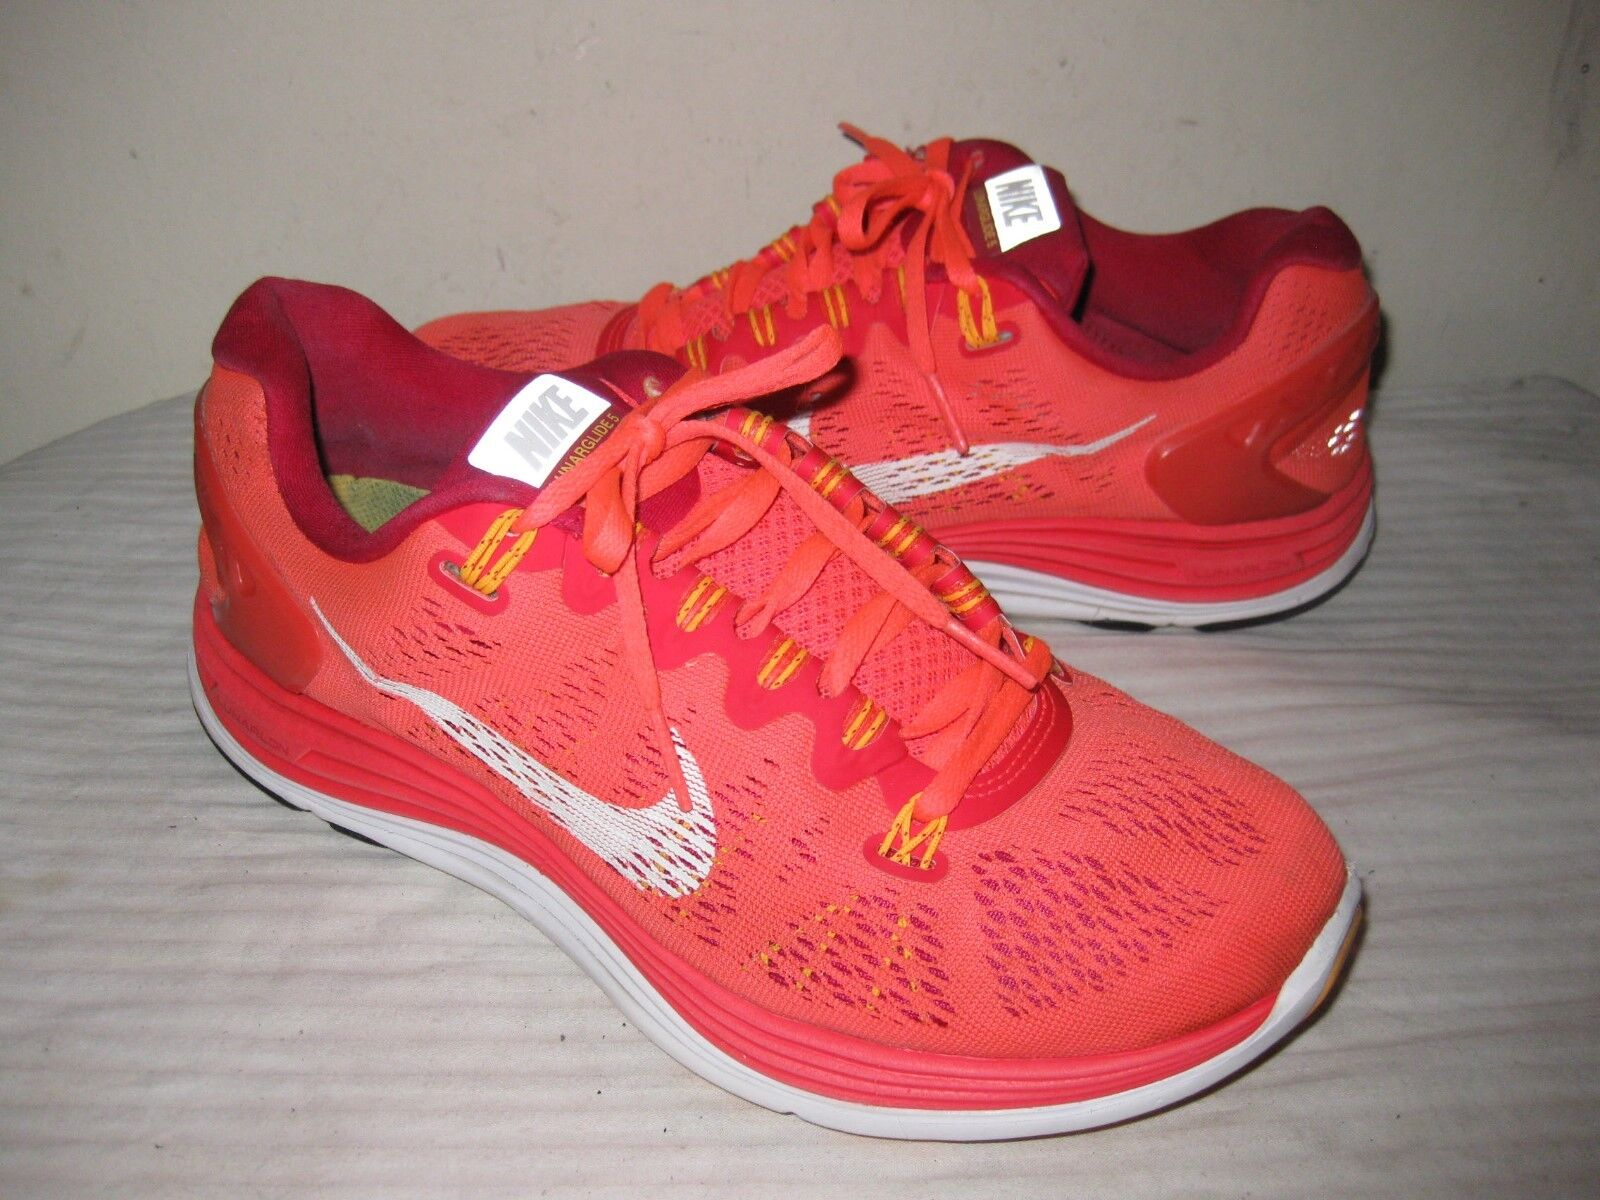 Nike Lunarglide 5  Style Women's Shoes Comfortable New shoes for men and women, limited time discount